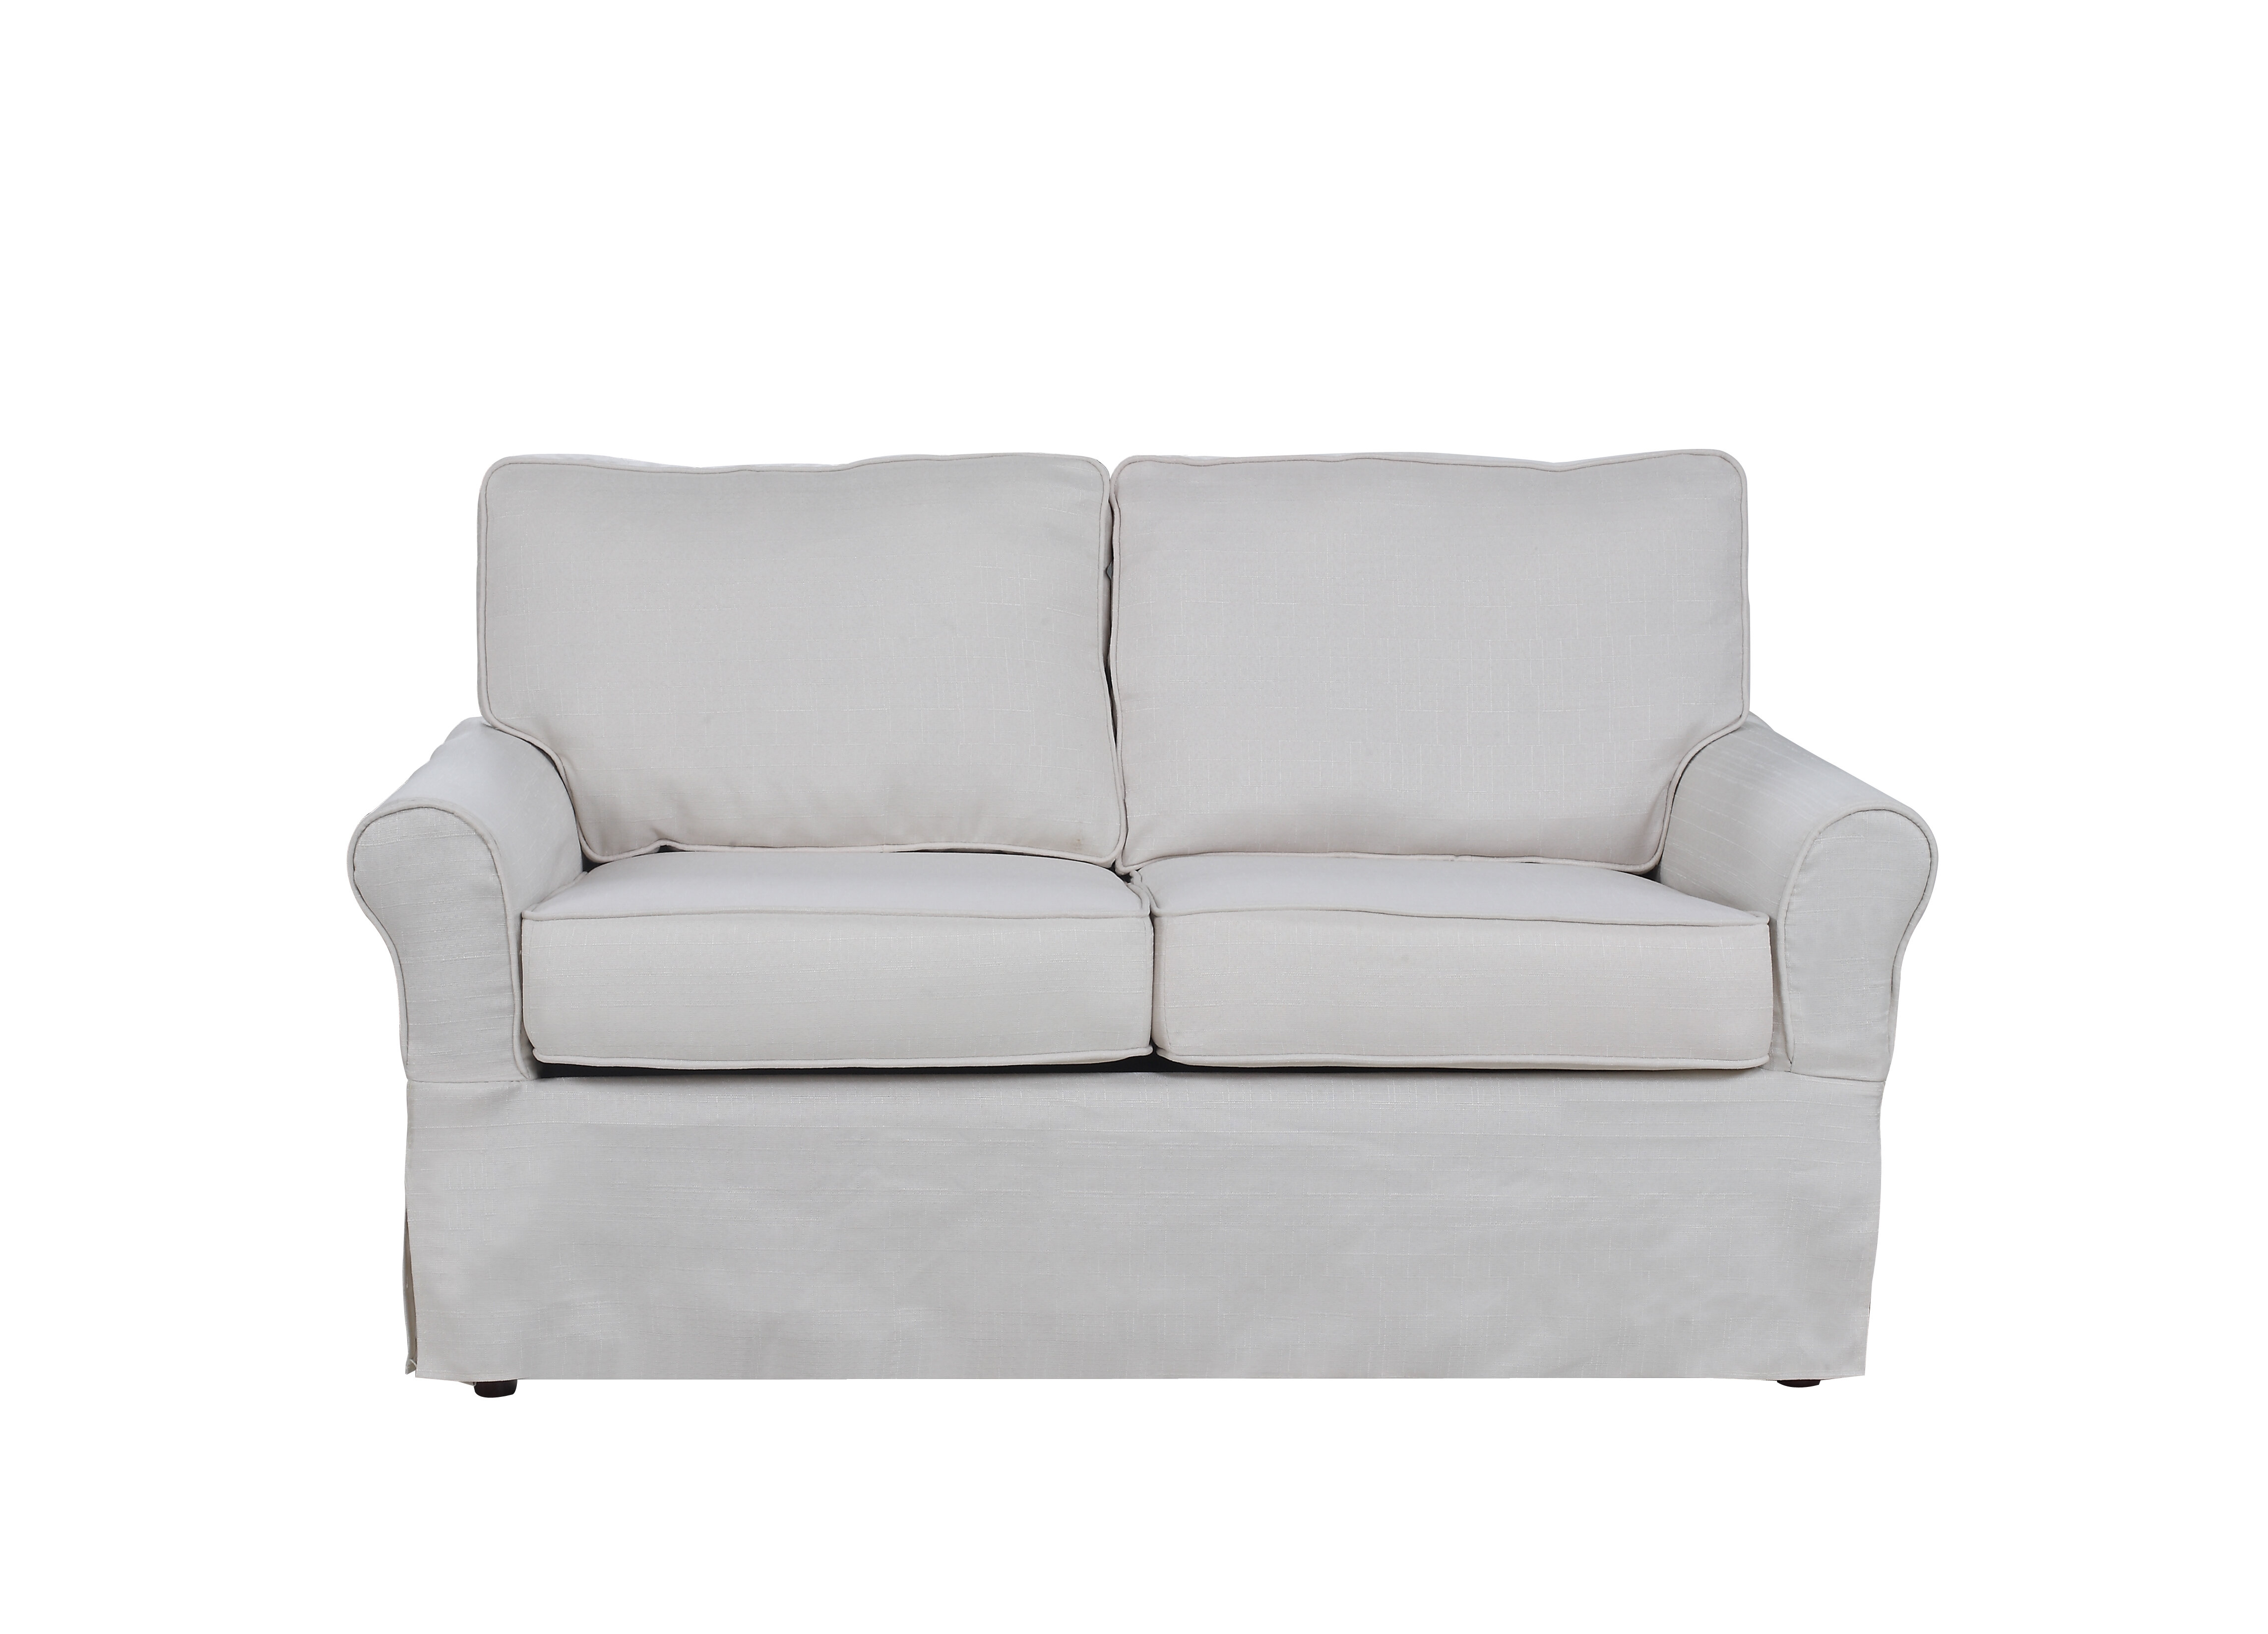 patios luxuri fresh marvellous sofa teen of s new einzigartig grau ergebnis loveseat the sectional images top